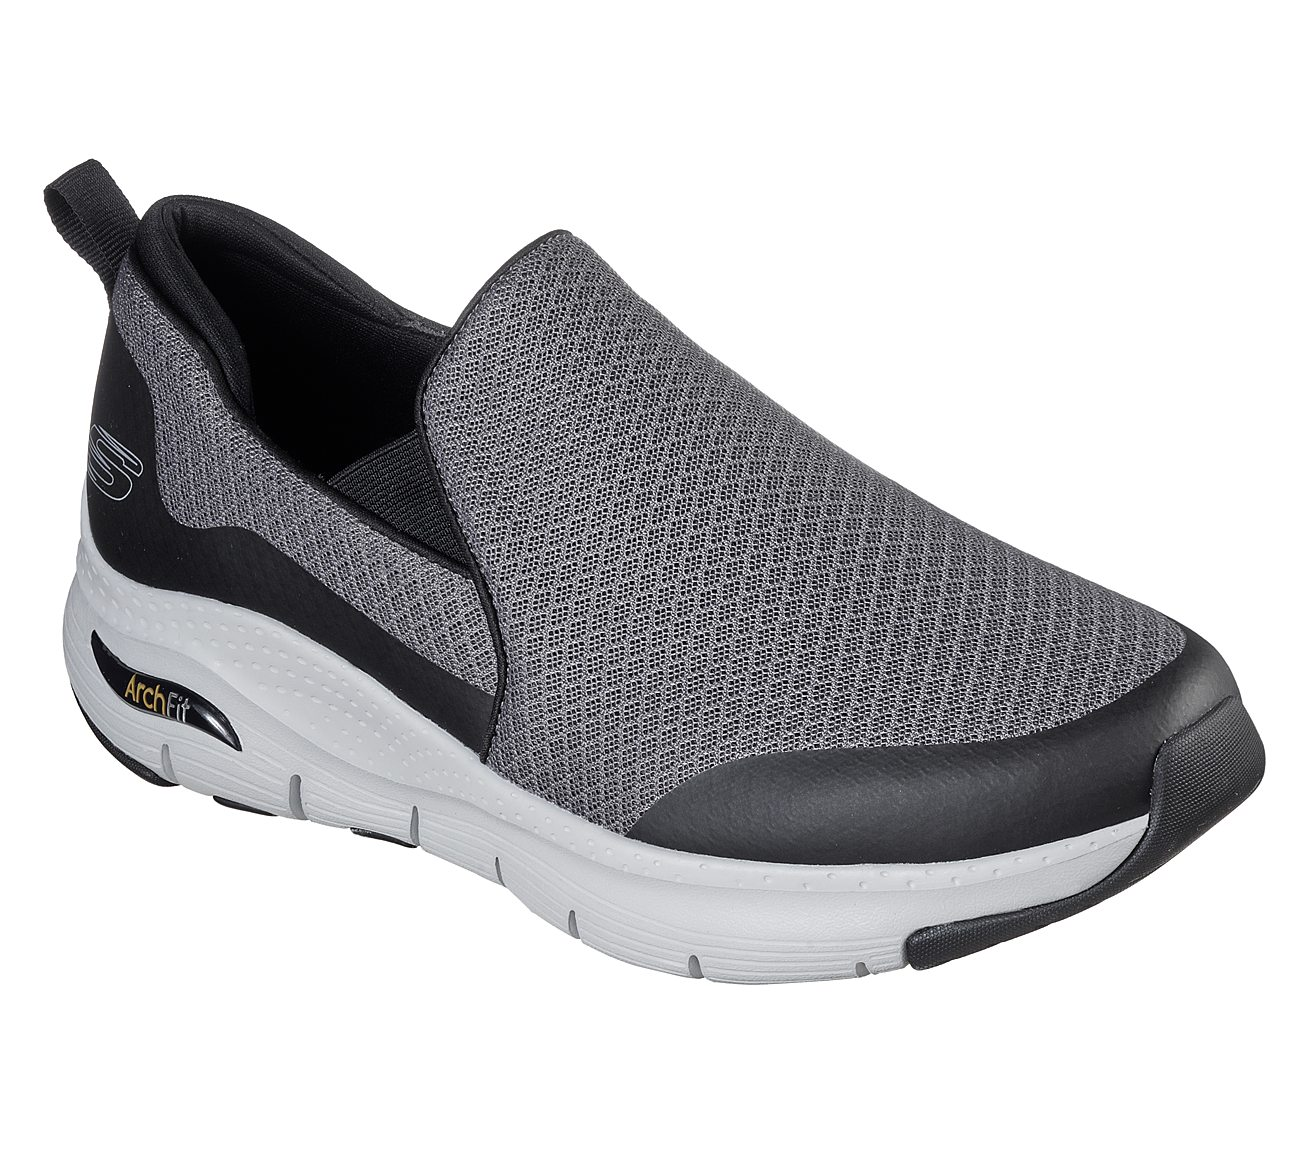 Skechers Arch Fit Banlin EXTRA WIDE FIT